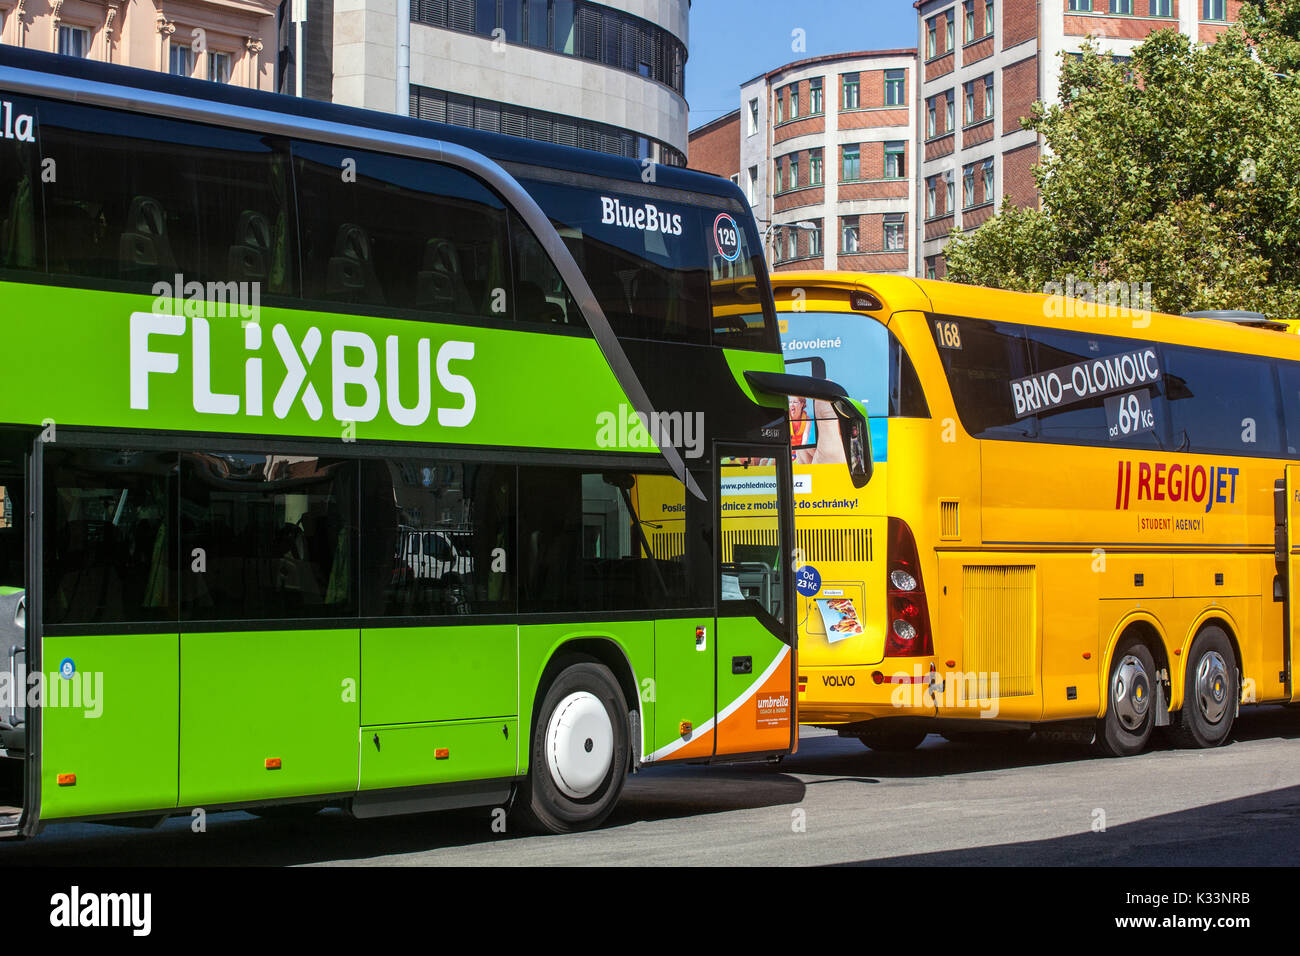 flixbus stockfotos flixbus bilder seite 2 alamy. Black Bedroom Furniture Sets. Home Design Ideas